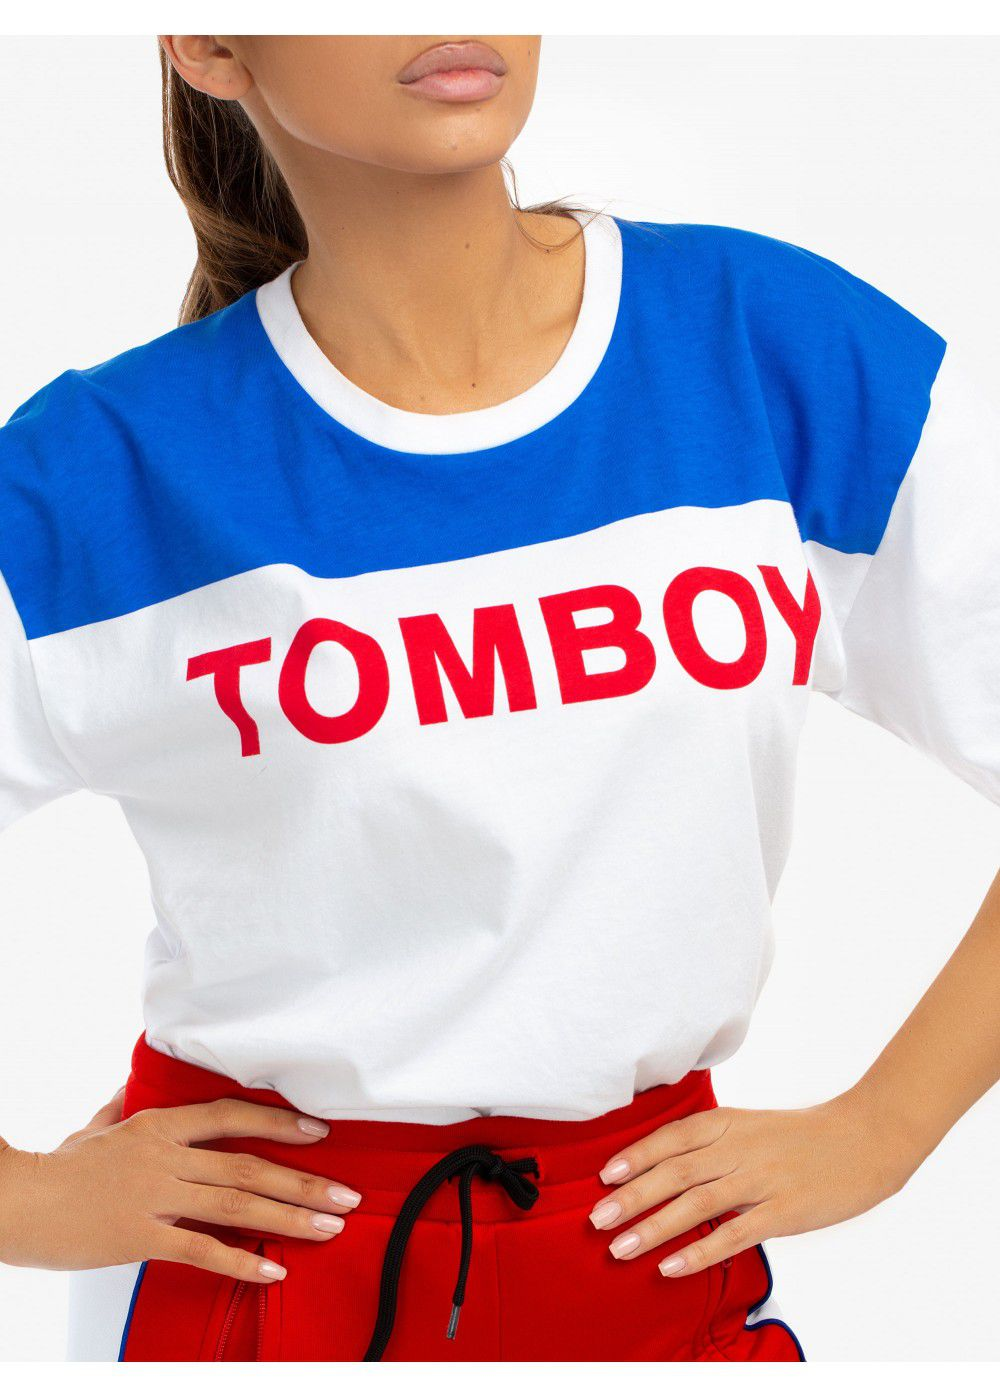 Tomboy T-Shirt in Blue